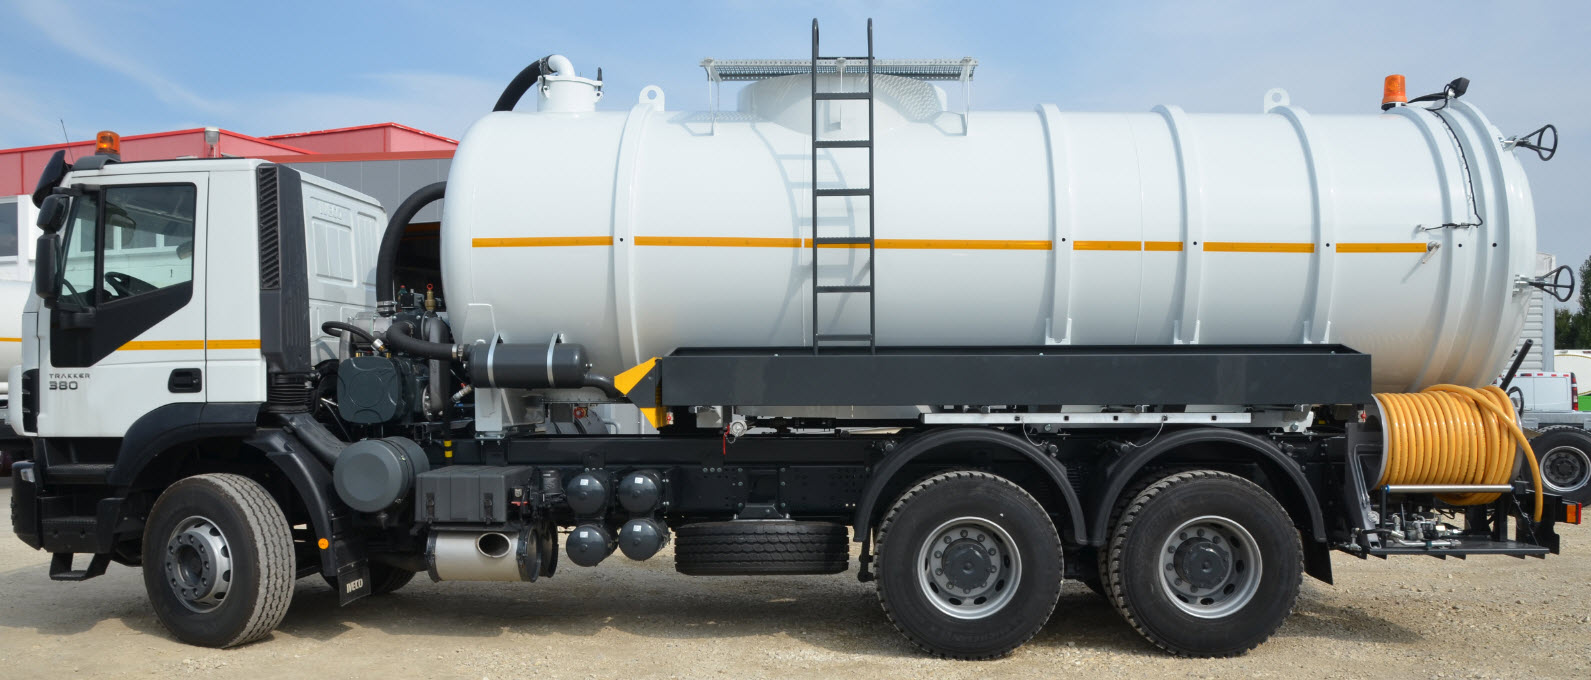 Vacuum–Jetting-Flushing combination trucks for road sewer flushing and cleaning. General high-pressure cleaning operation and safe transport of mud and sewage water. Made in Germany, Europe.